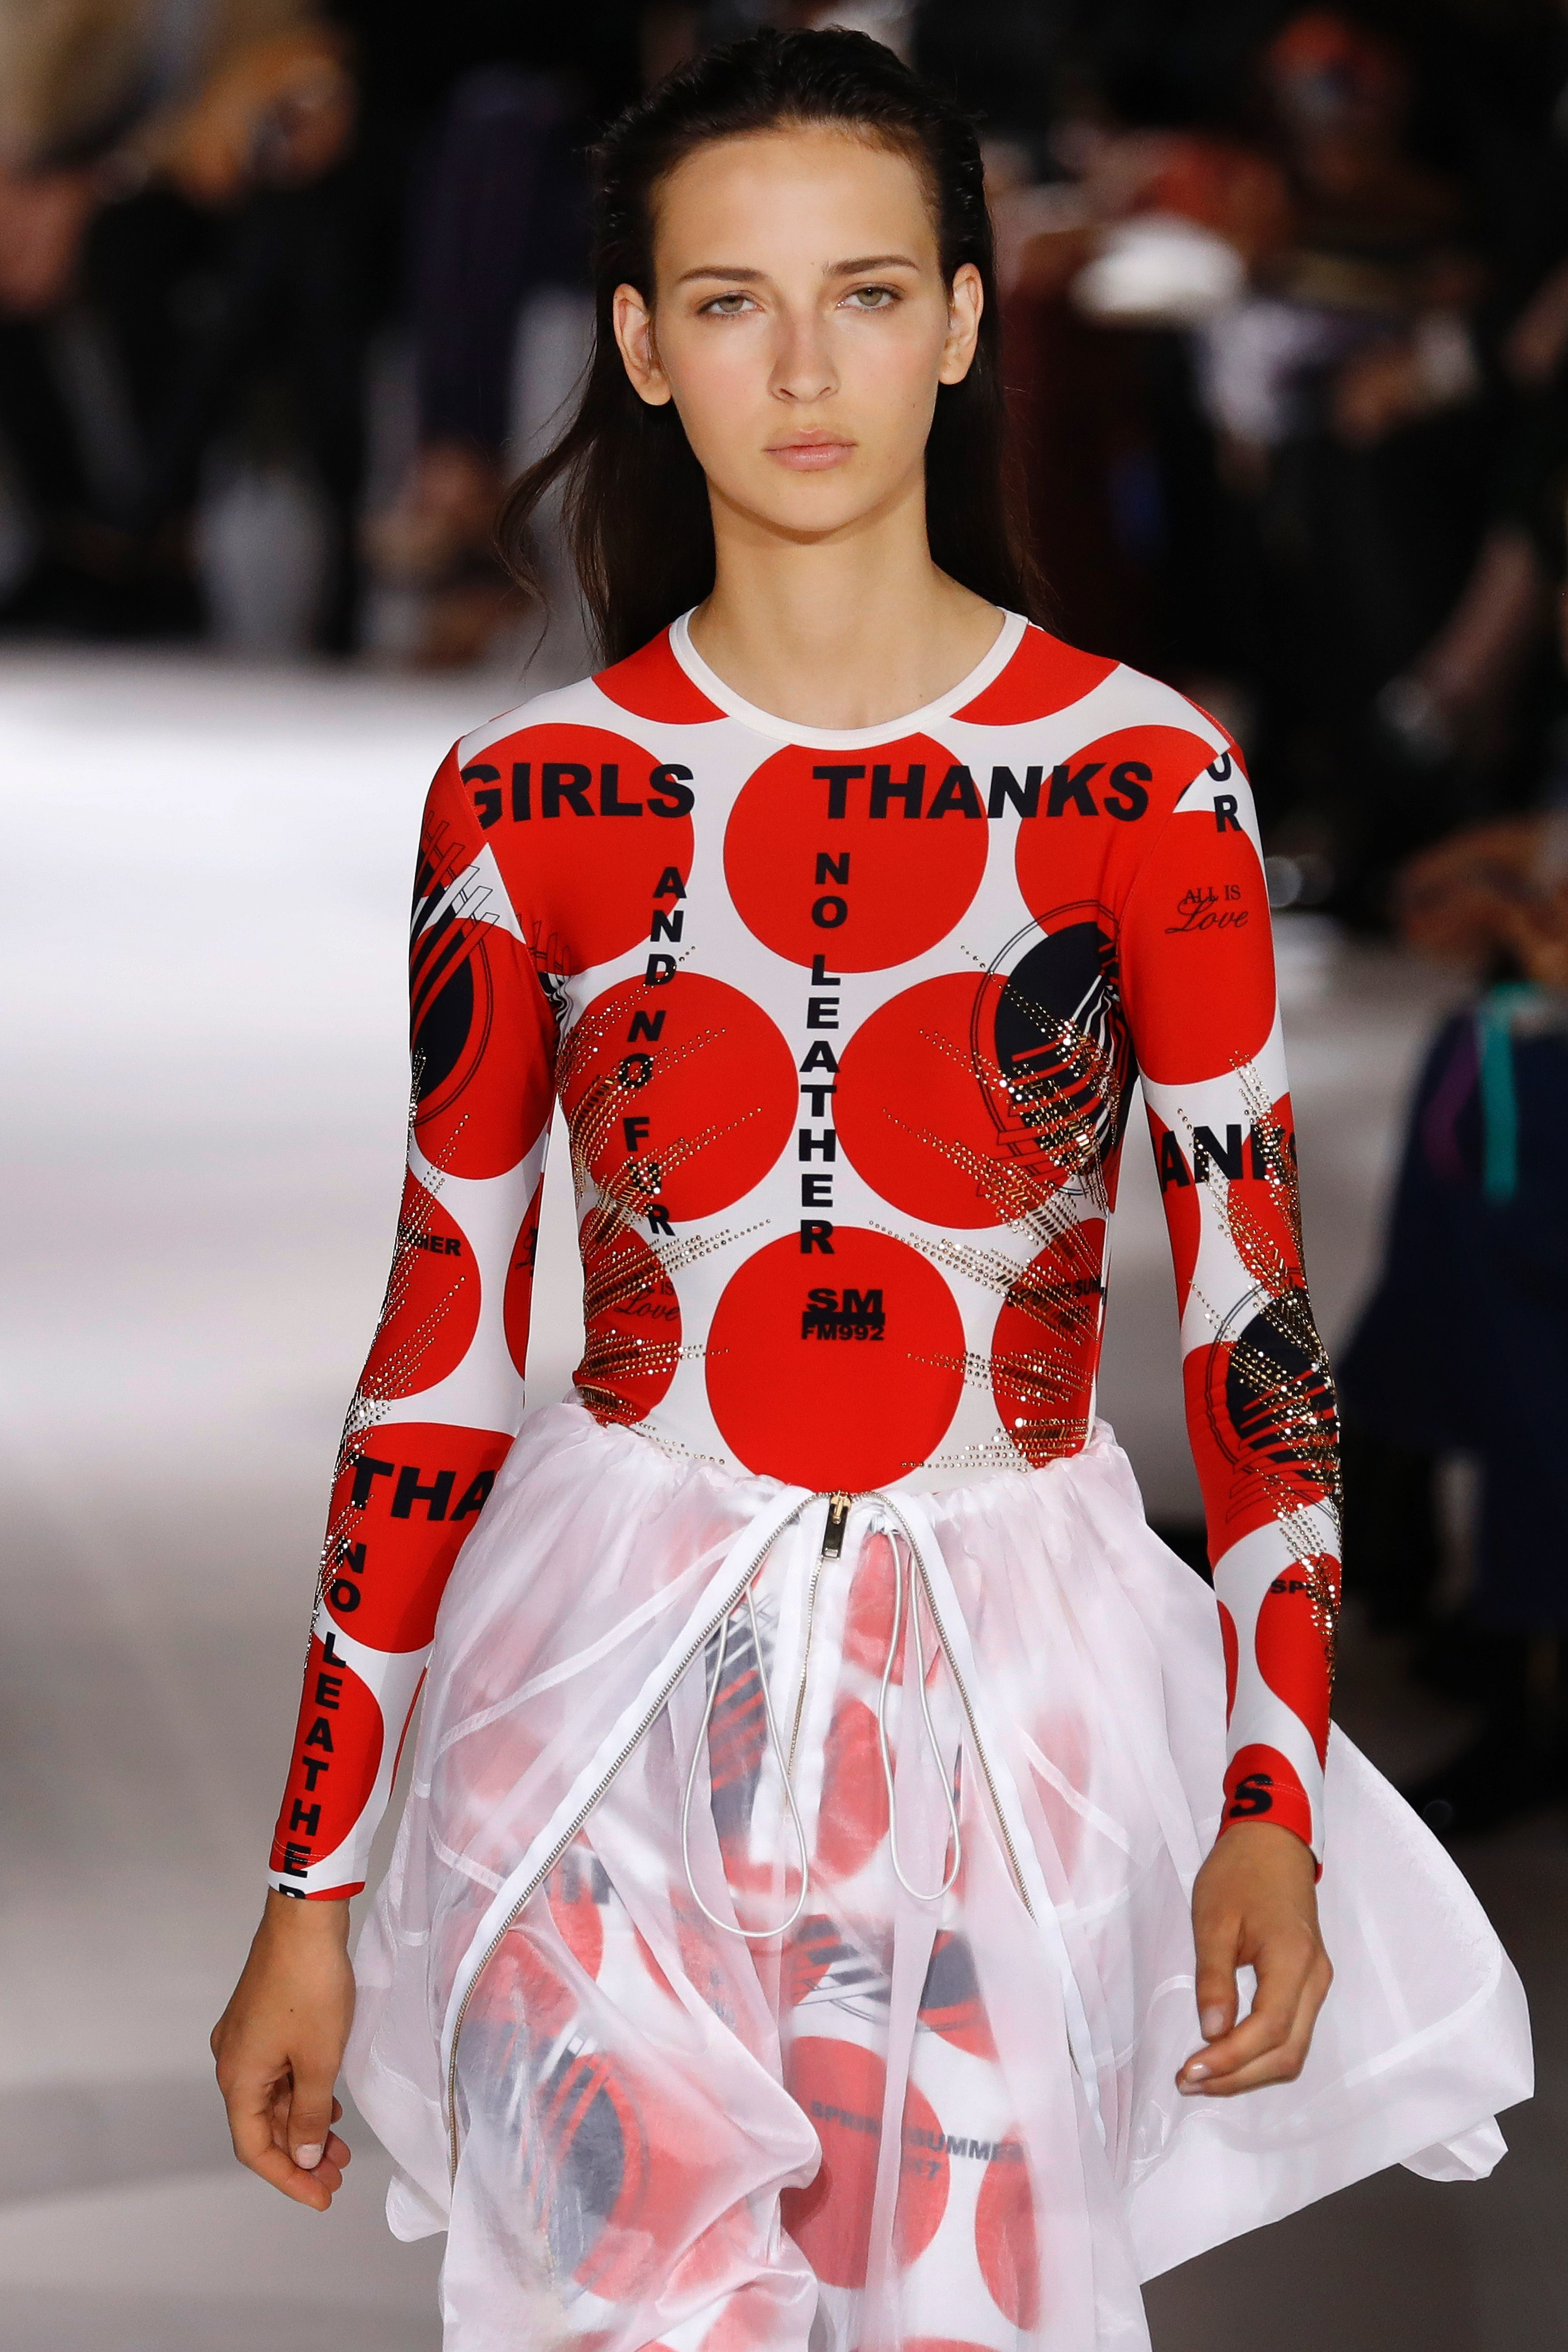 Stella McCartney's Models Wear Her Sustainable Fashion Ethos Close To Their